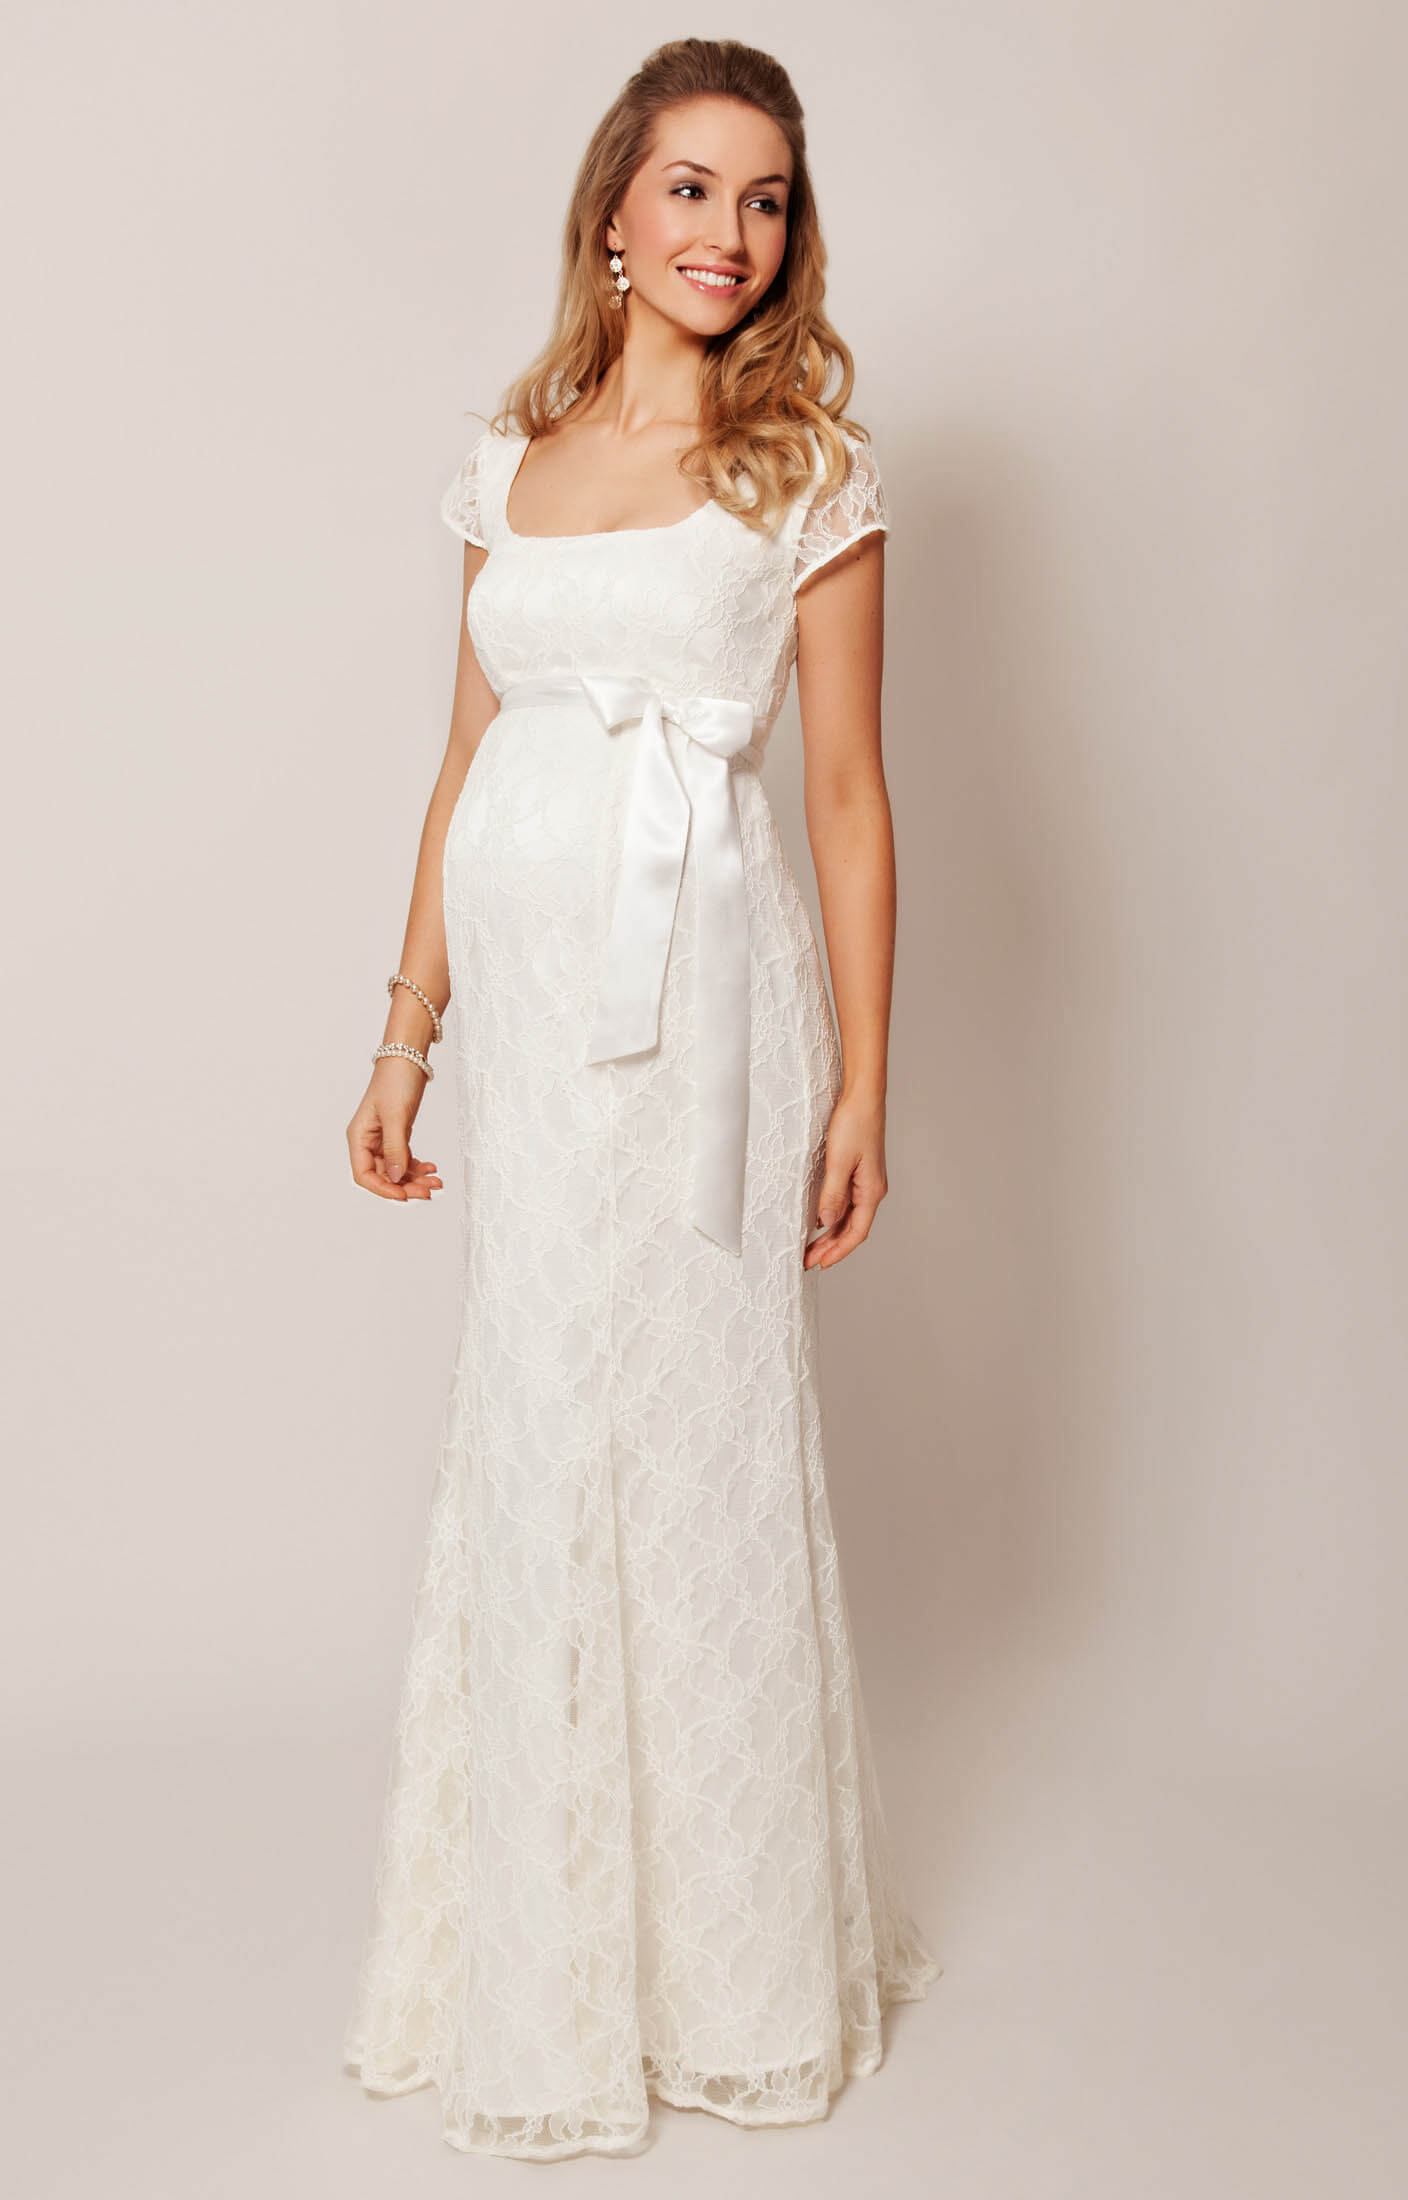 Pregnancy Wedding Dresses Fashion Dresses,Wedding Dress Designers Uk